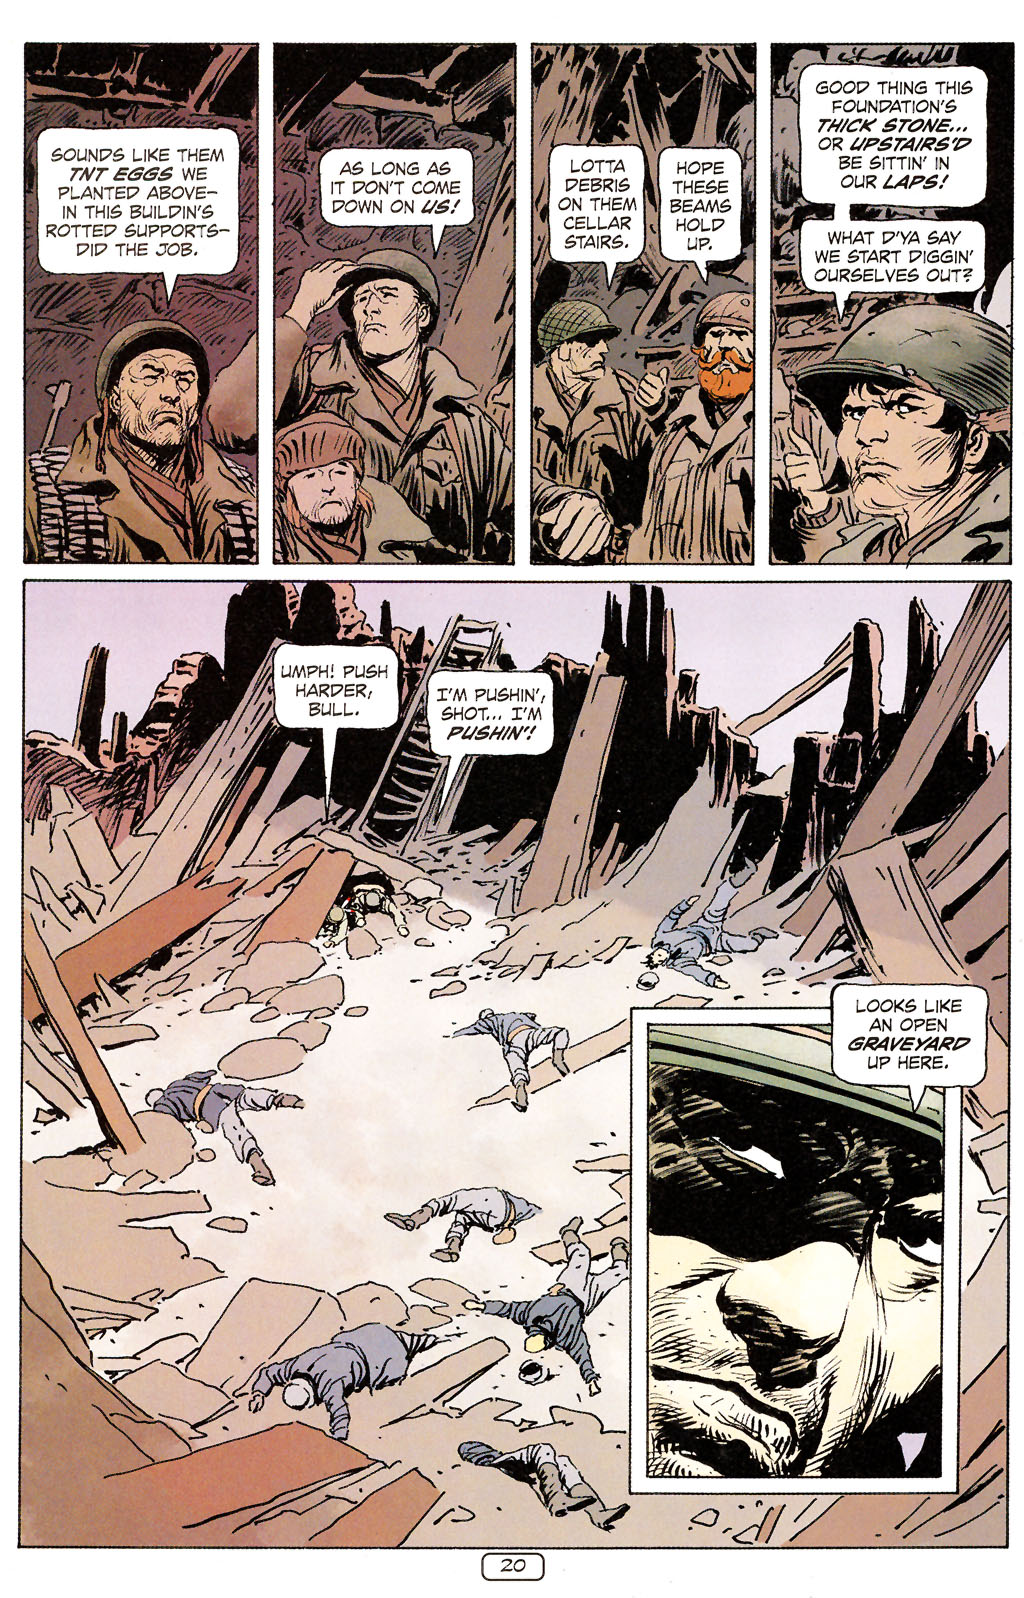 Read online Sgt. Rock: The Prophecy comic -  Issue #6 - 20